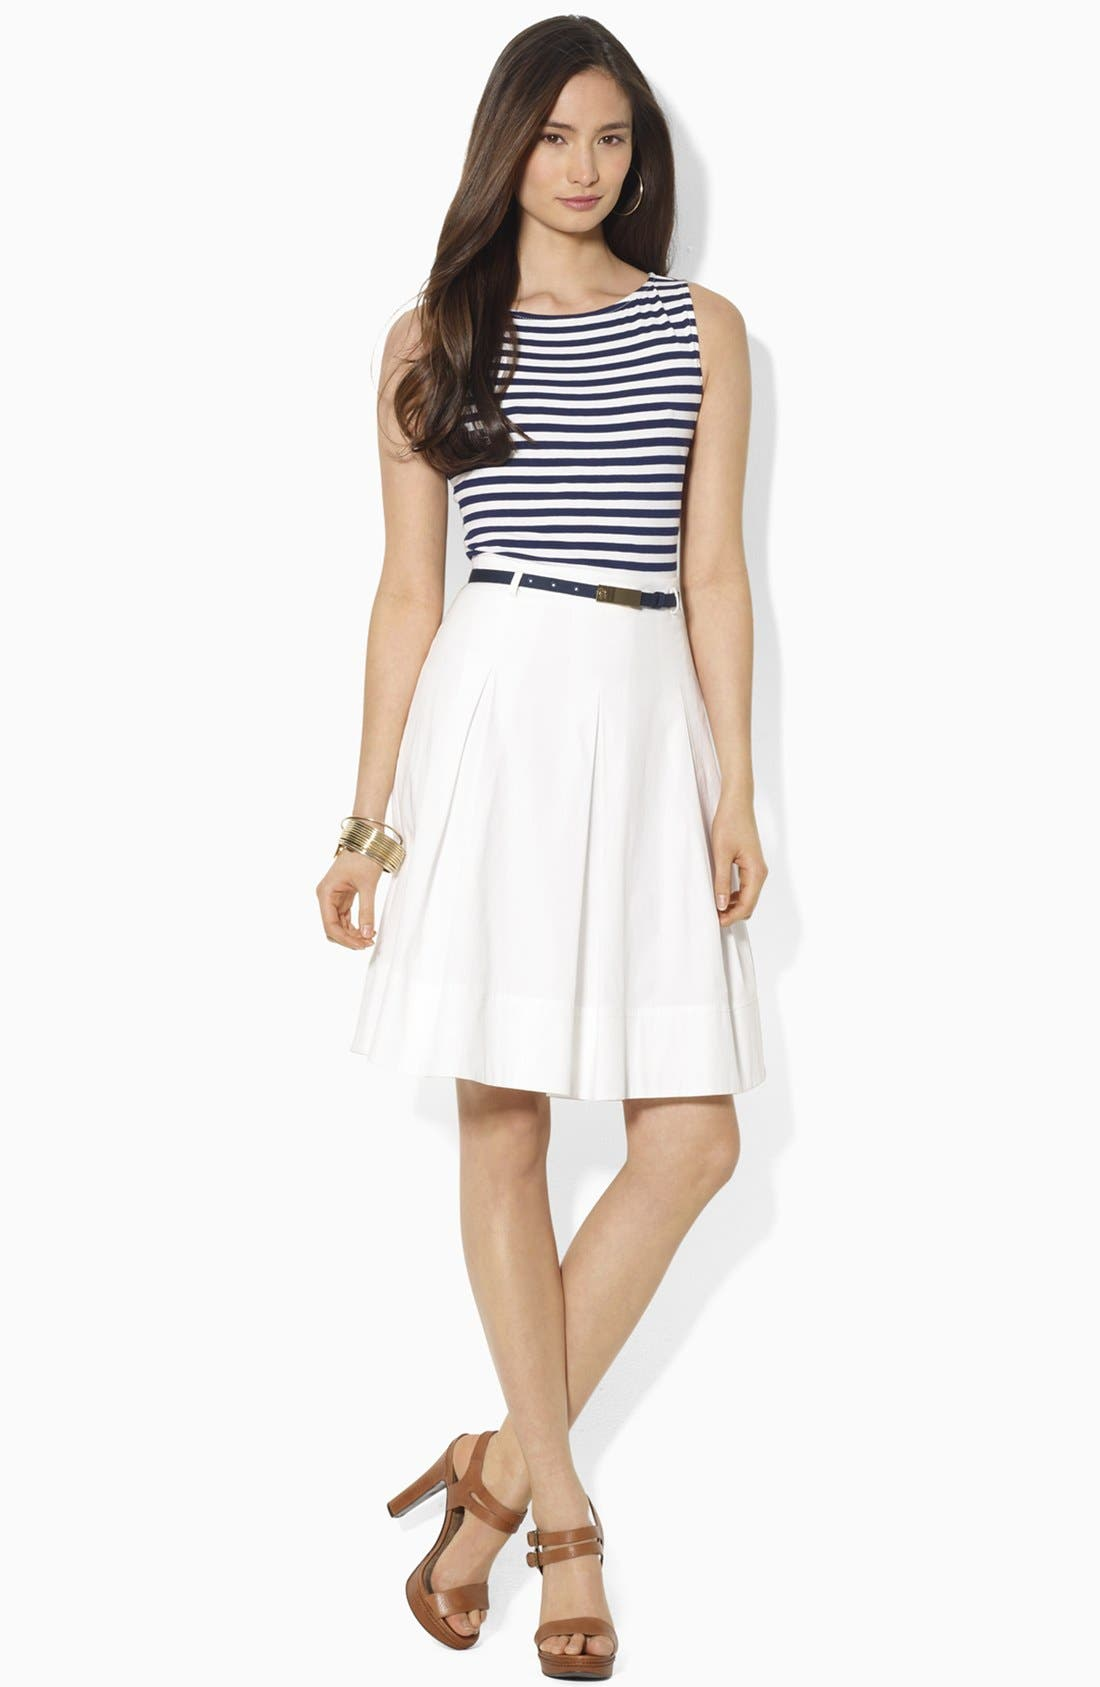 Alternate Image 1 Selected - Lauren Ralph Lauren Mock Two-Piece Dress (Petite)